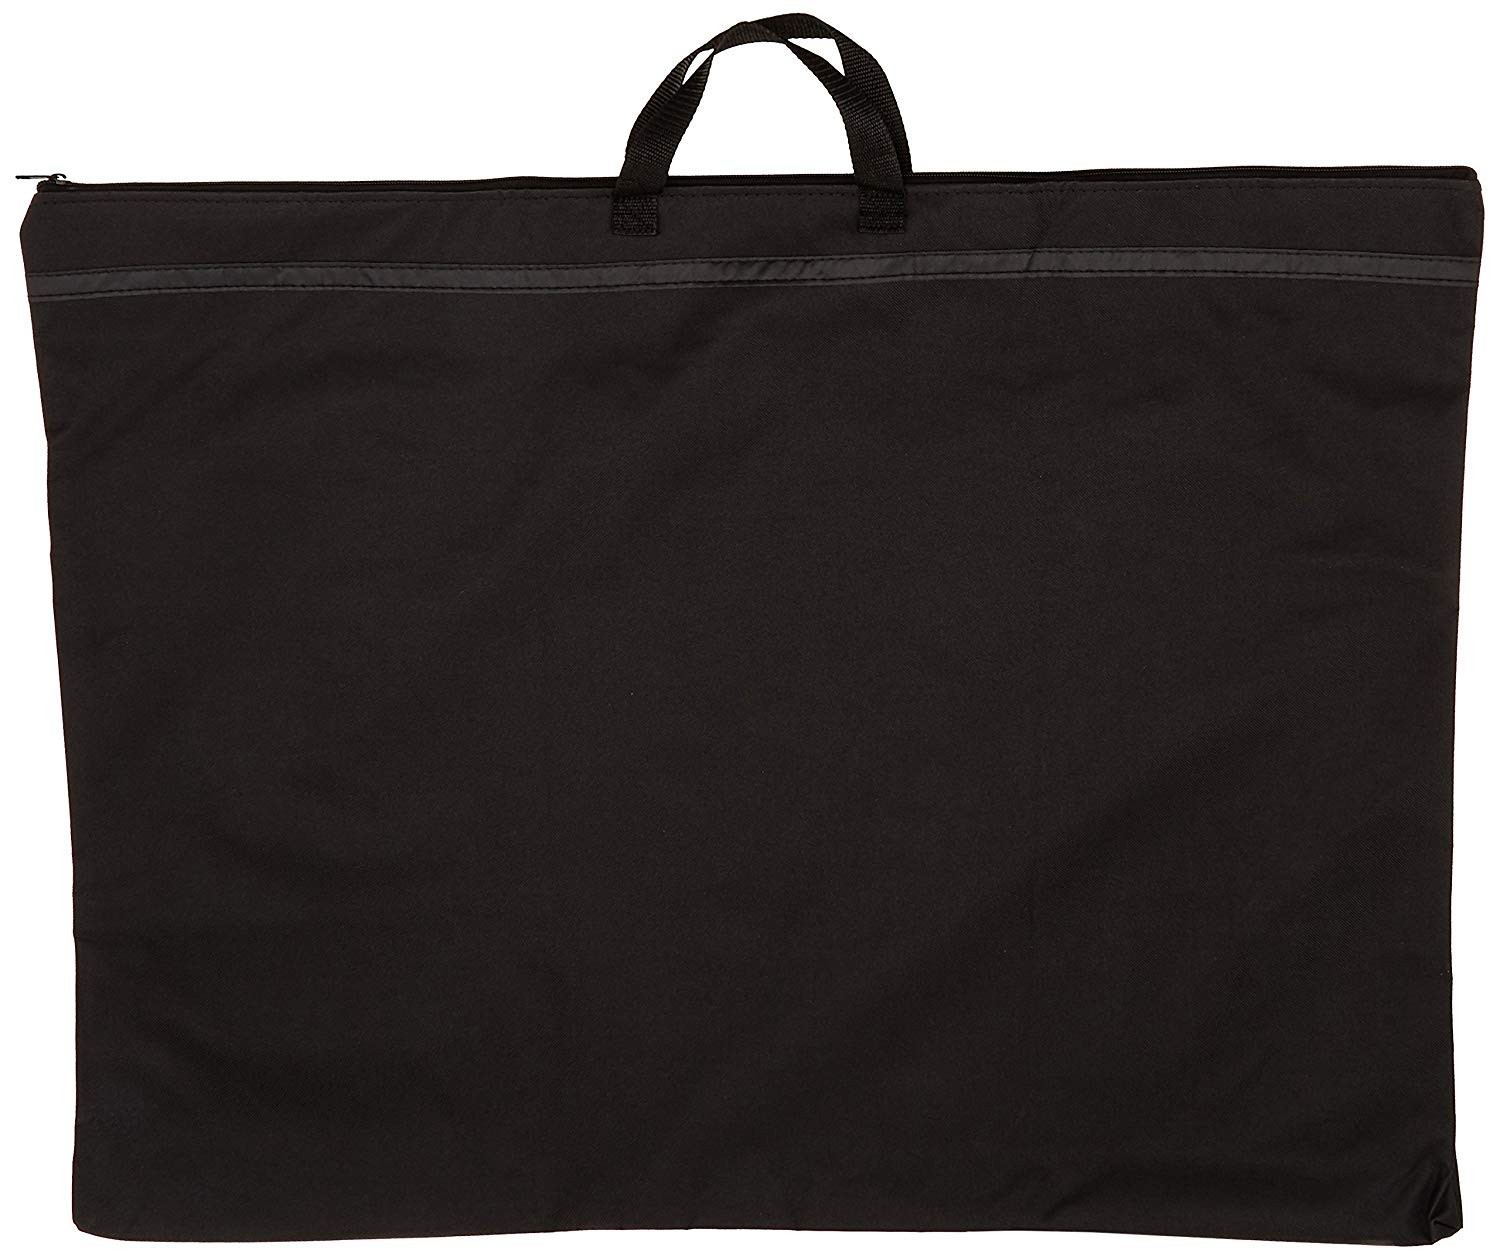 Alvin Soft-Sided Portfolio, 23 inches x 31 inches, Black